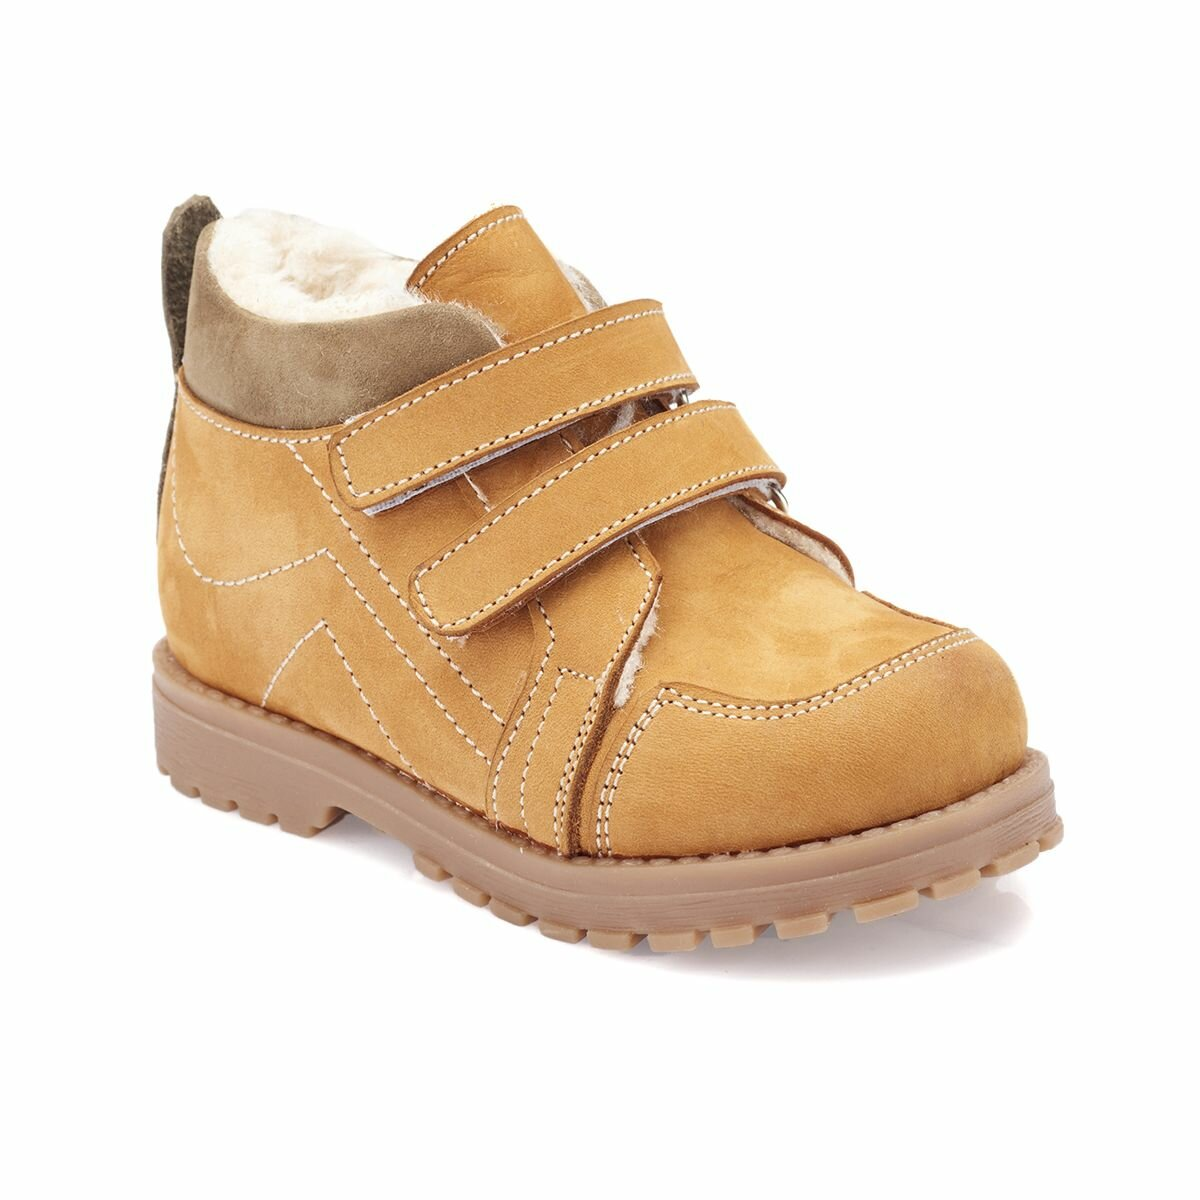 FLO 82.510548.B Yellow Male Child Boots Polaris